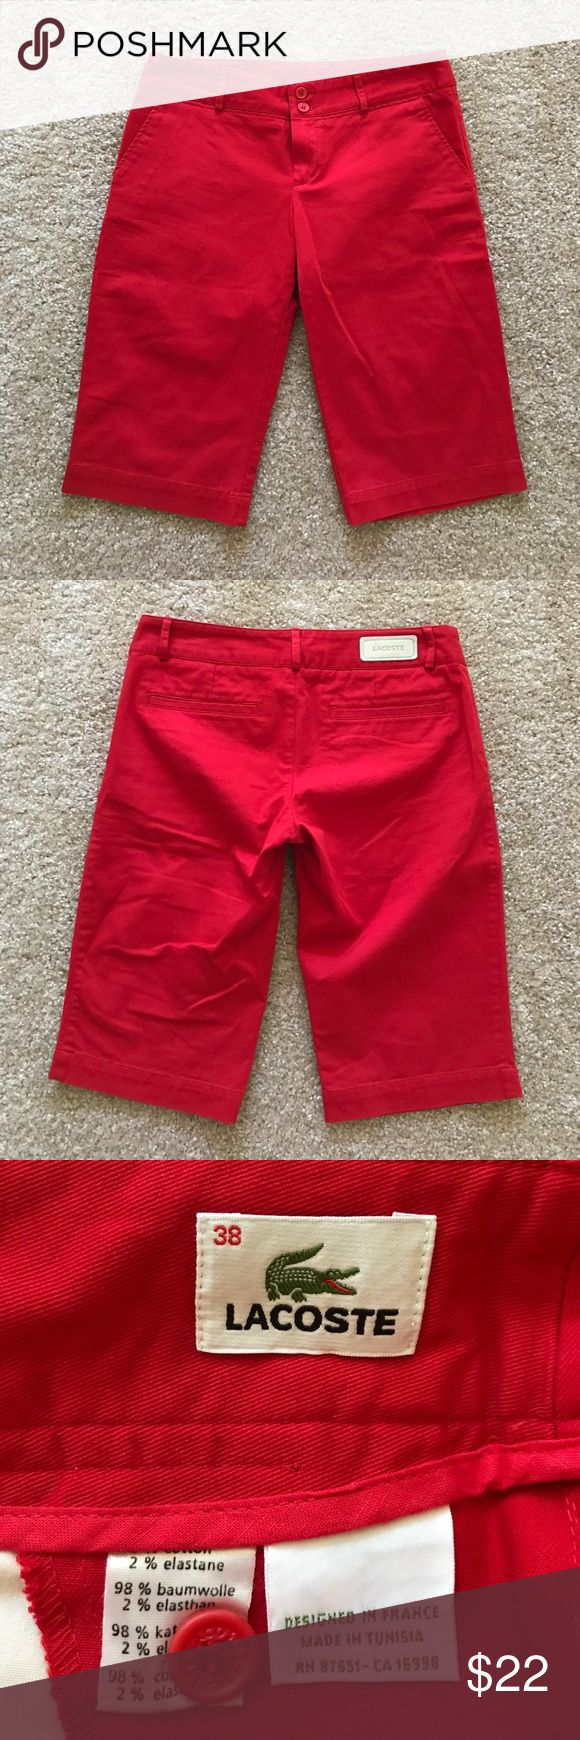 Lacoste Bermuda / Walking Shorts Size 38/US 6 NWOT New, never worn Lacoste Bermuda shorts in size U.K. 38 (US 6). Made of cotton and elastane, just the right amount of stretch. Low rise fit. Smoke free, pet free home. NWOT Lacoste Shorts Bermudas